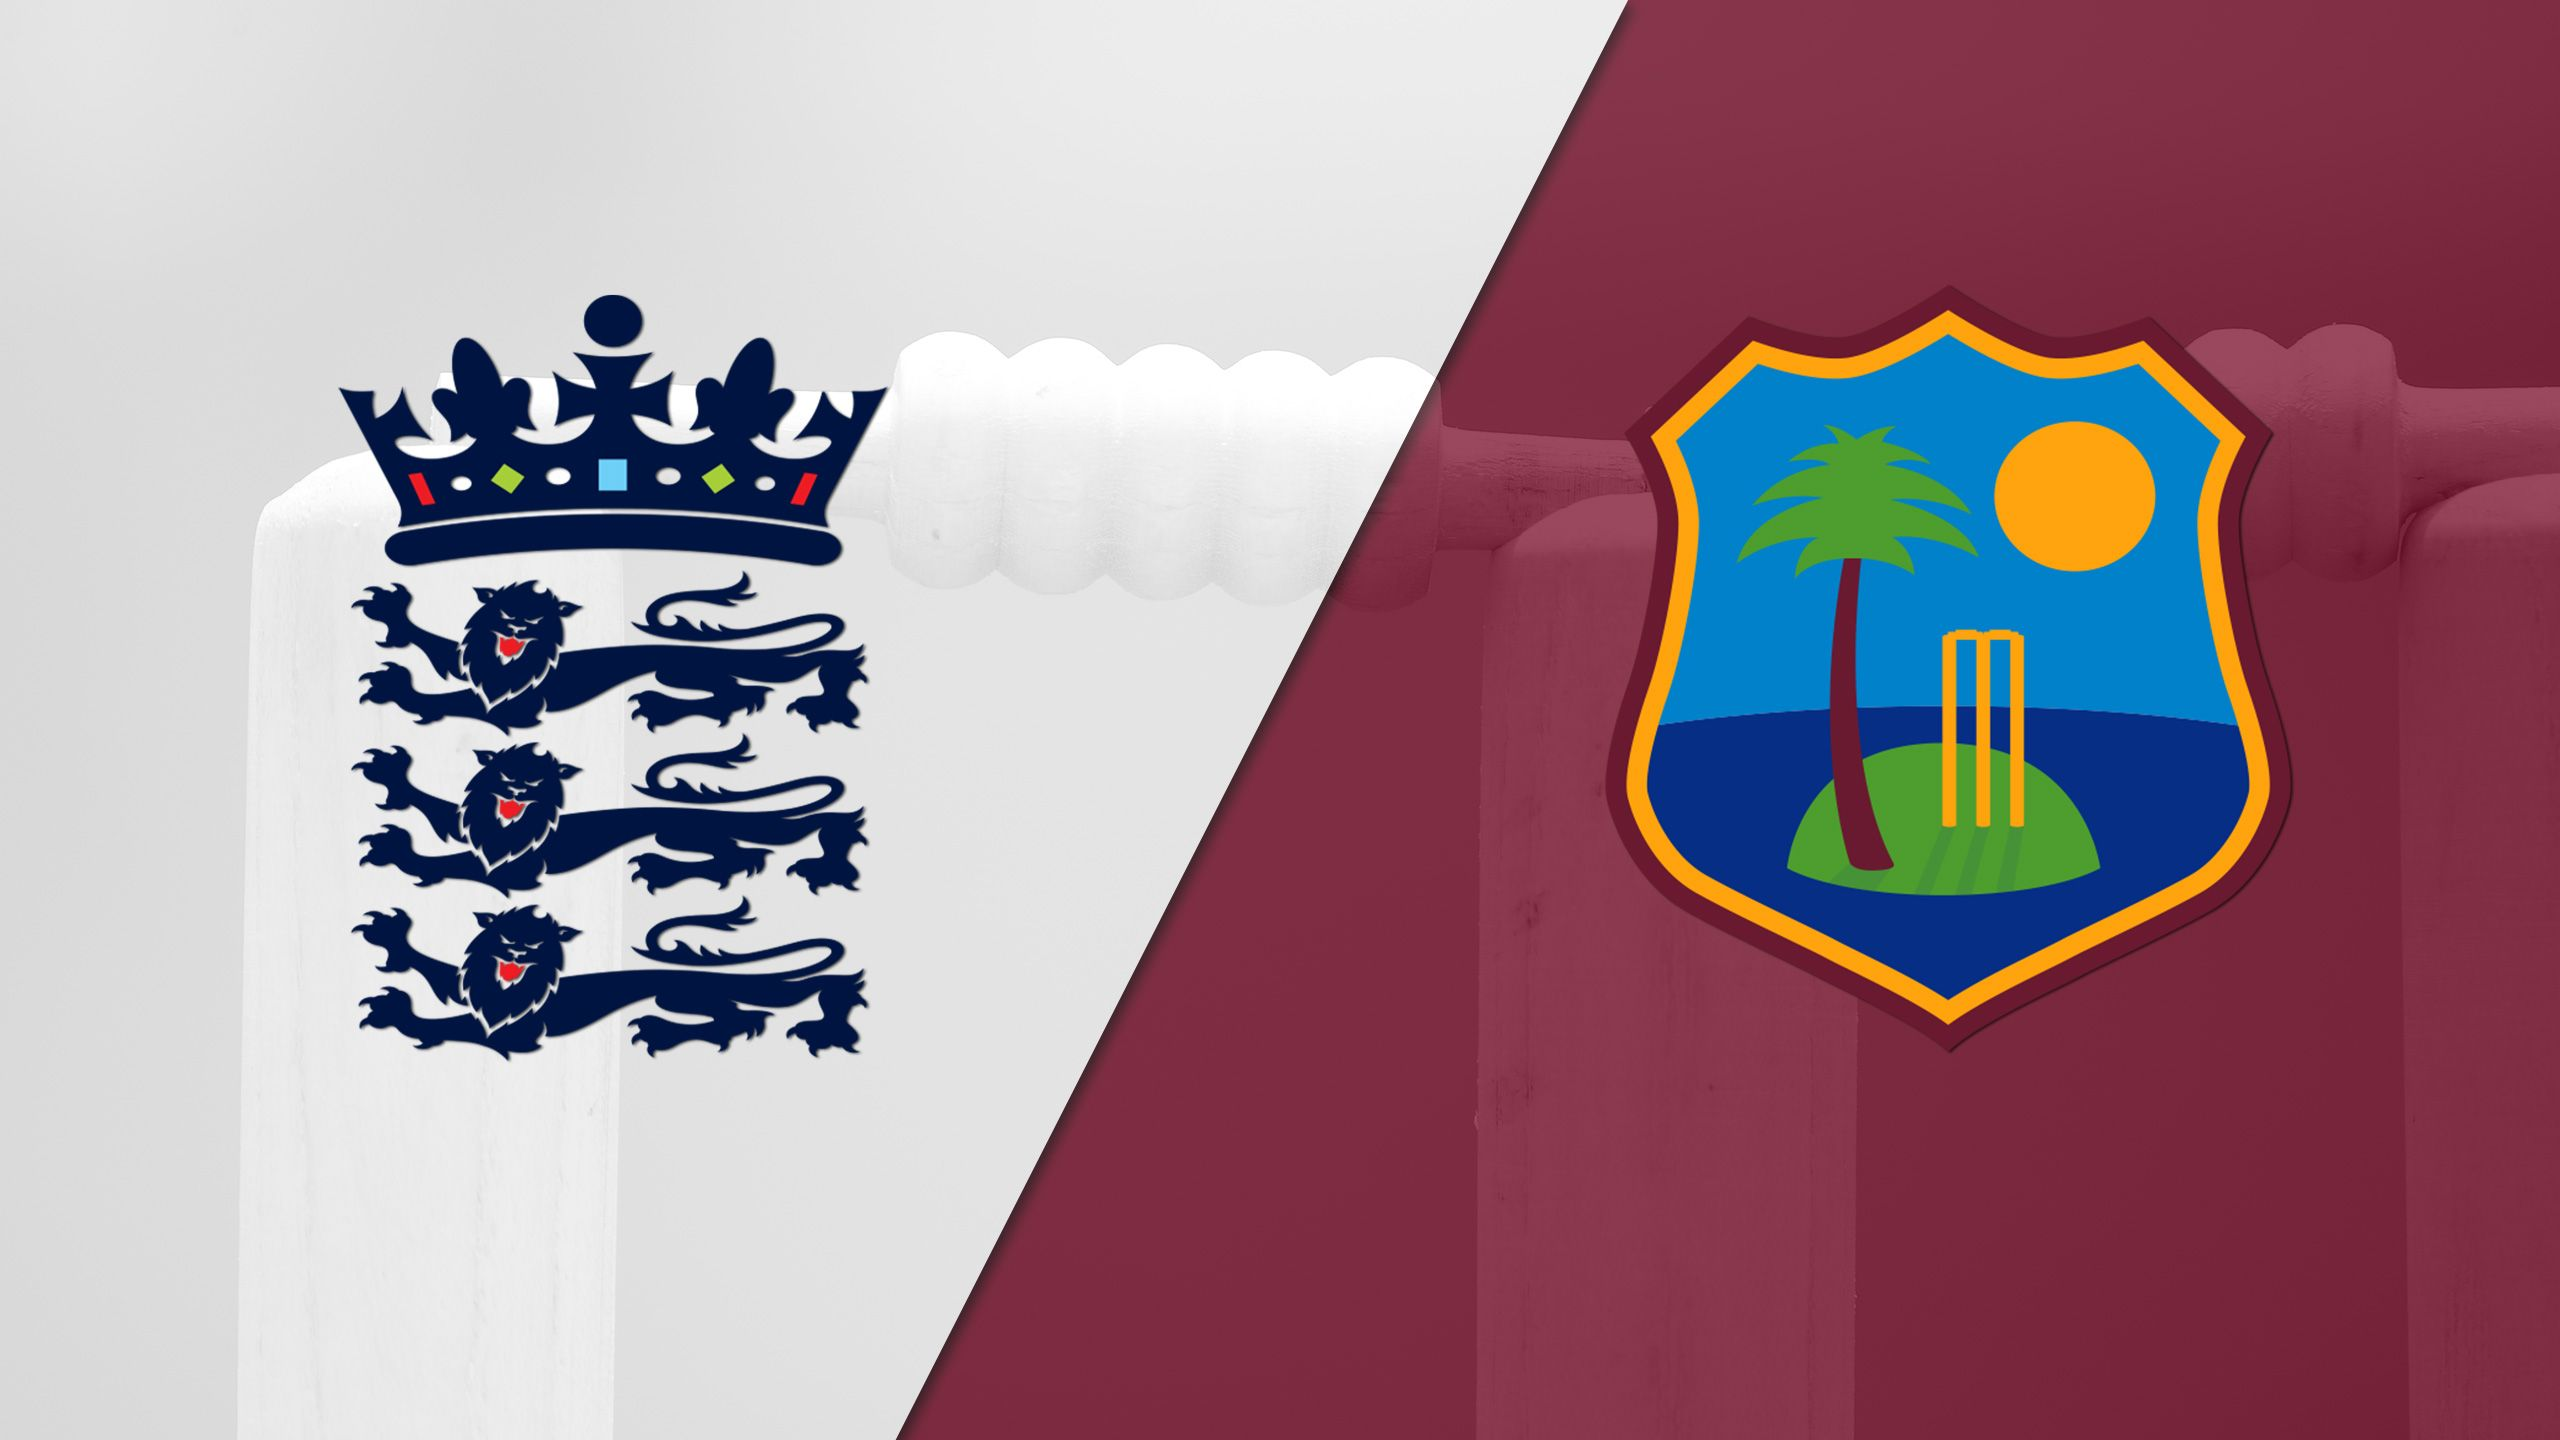 England vs. West Indies (Test 1, Day 2) (International Cricket)